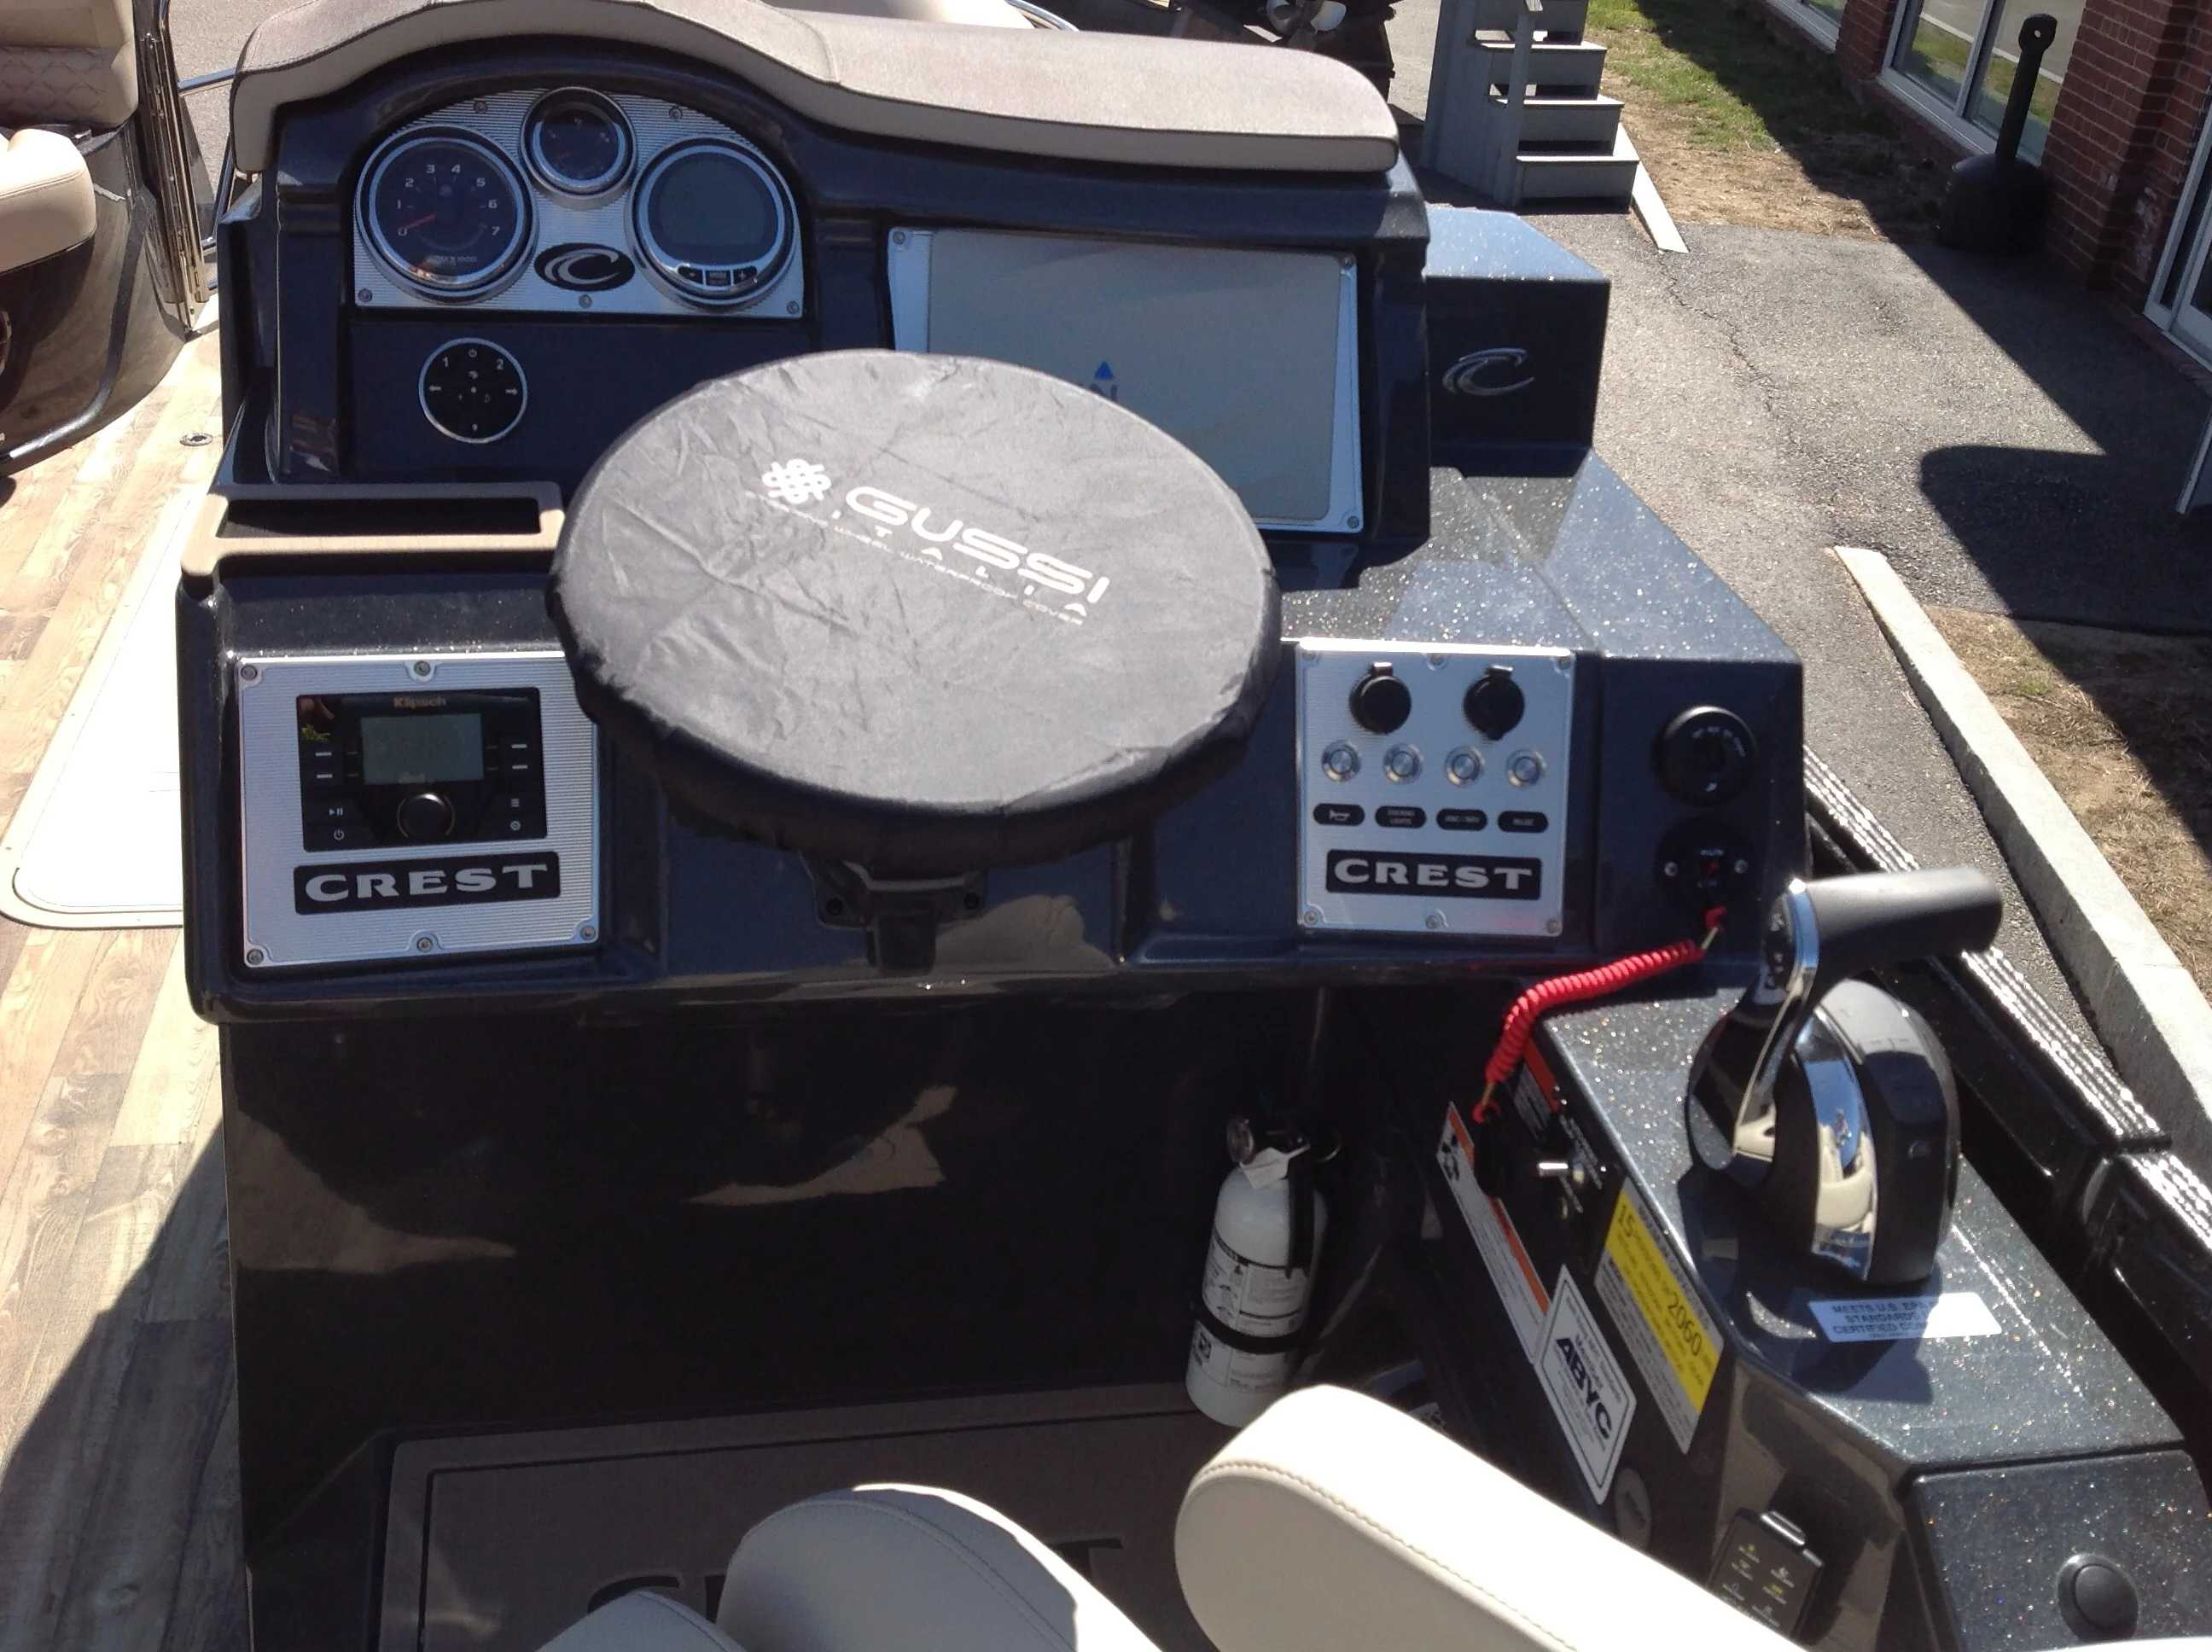 2021 Crest boat for sale, model of the boat is SAVANNAH 250SLRC & Image # 8 of 11